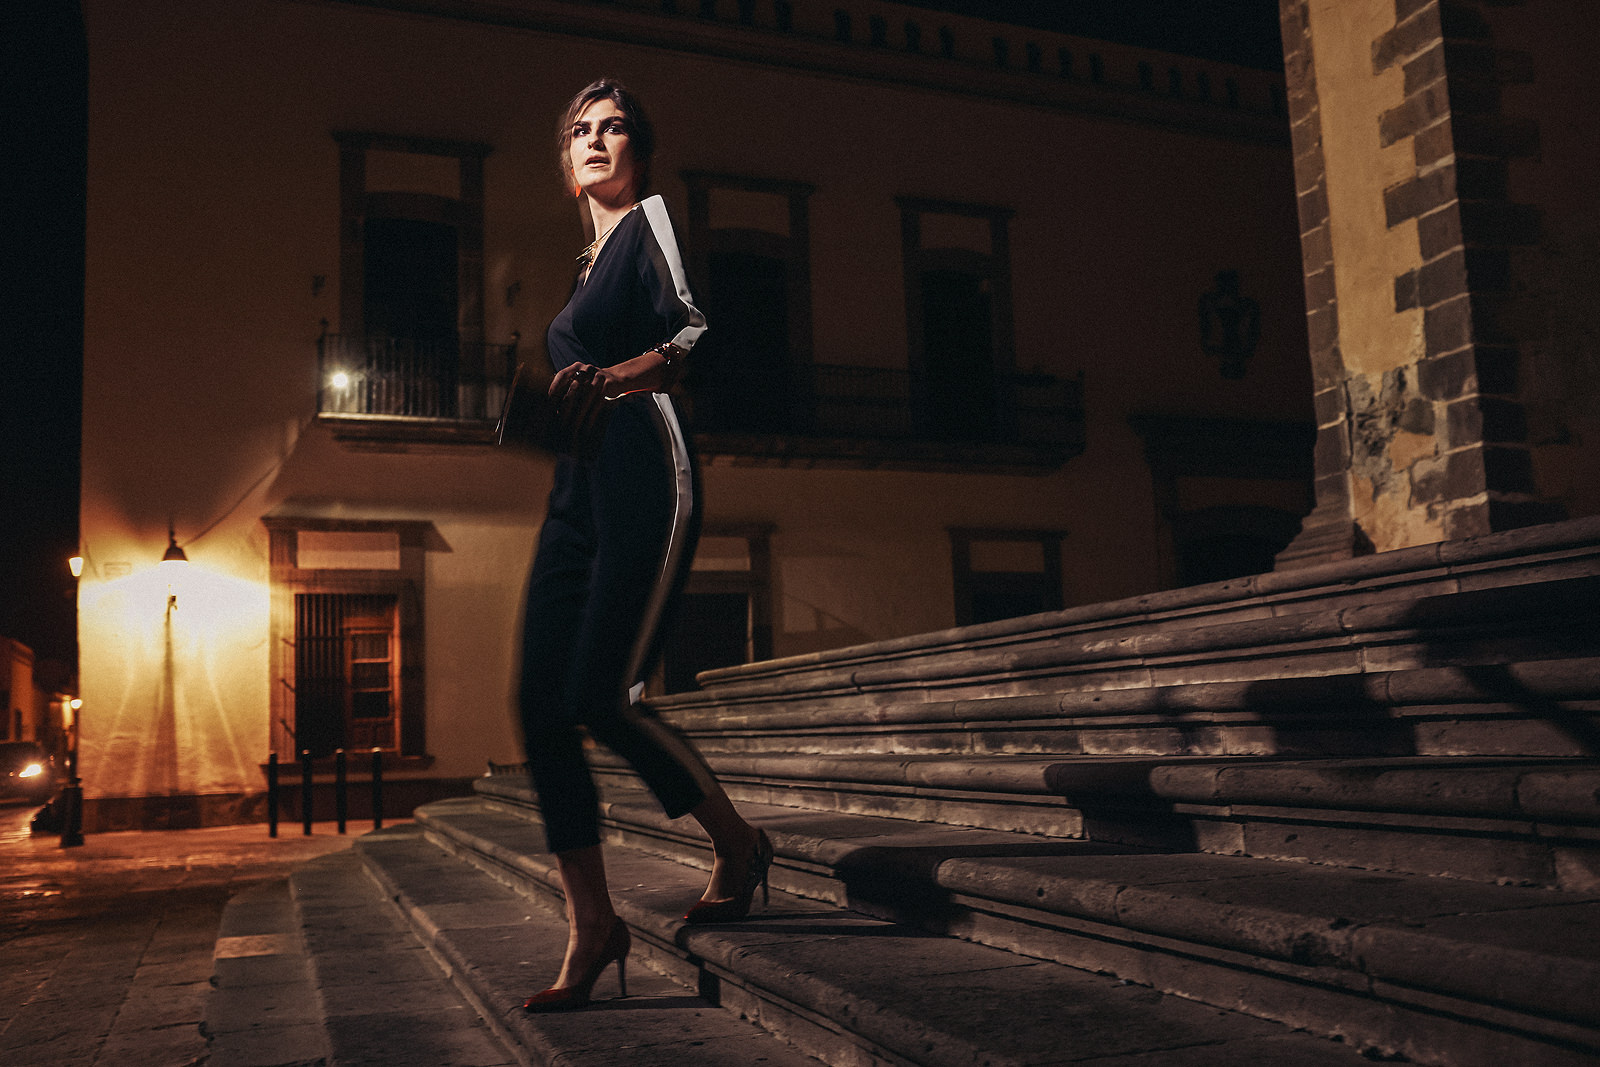 NIGHT AFFAIR marcosvaldés|FOTÓGRAFO® Fashion photographer